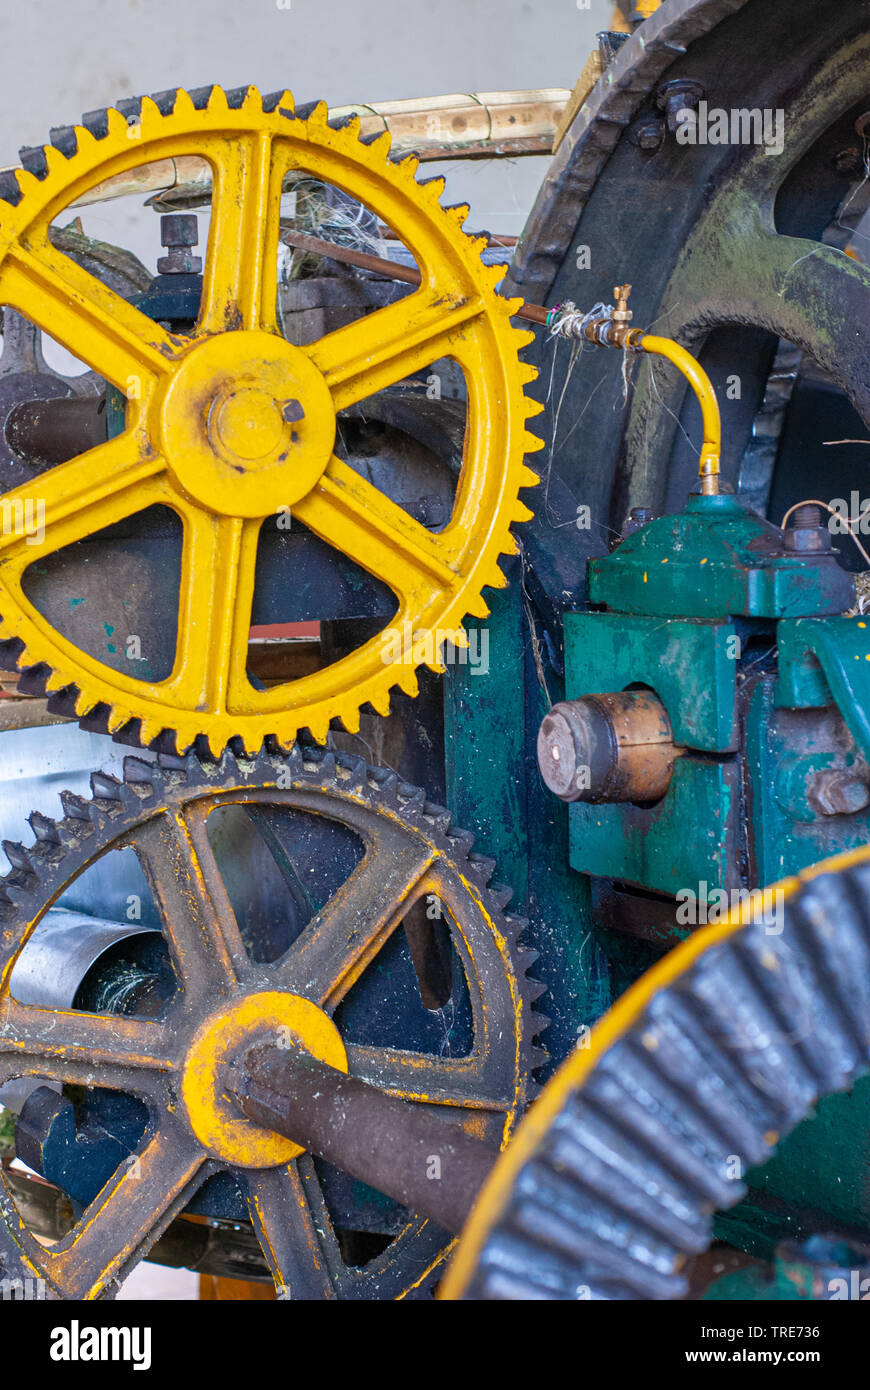 Gears of mechanical parts of transmission of motion, taken at the factory at Tecoh, in the Yucatan peninsula - Stock Image